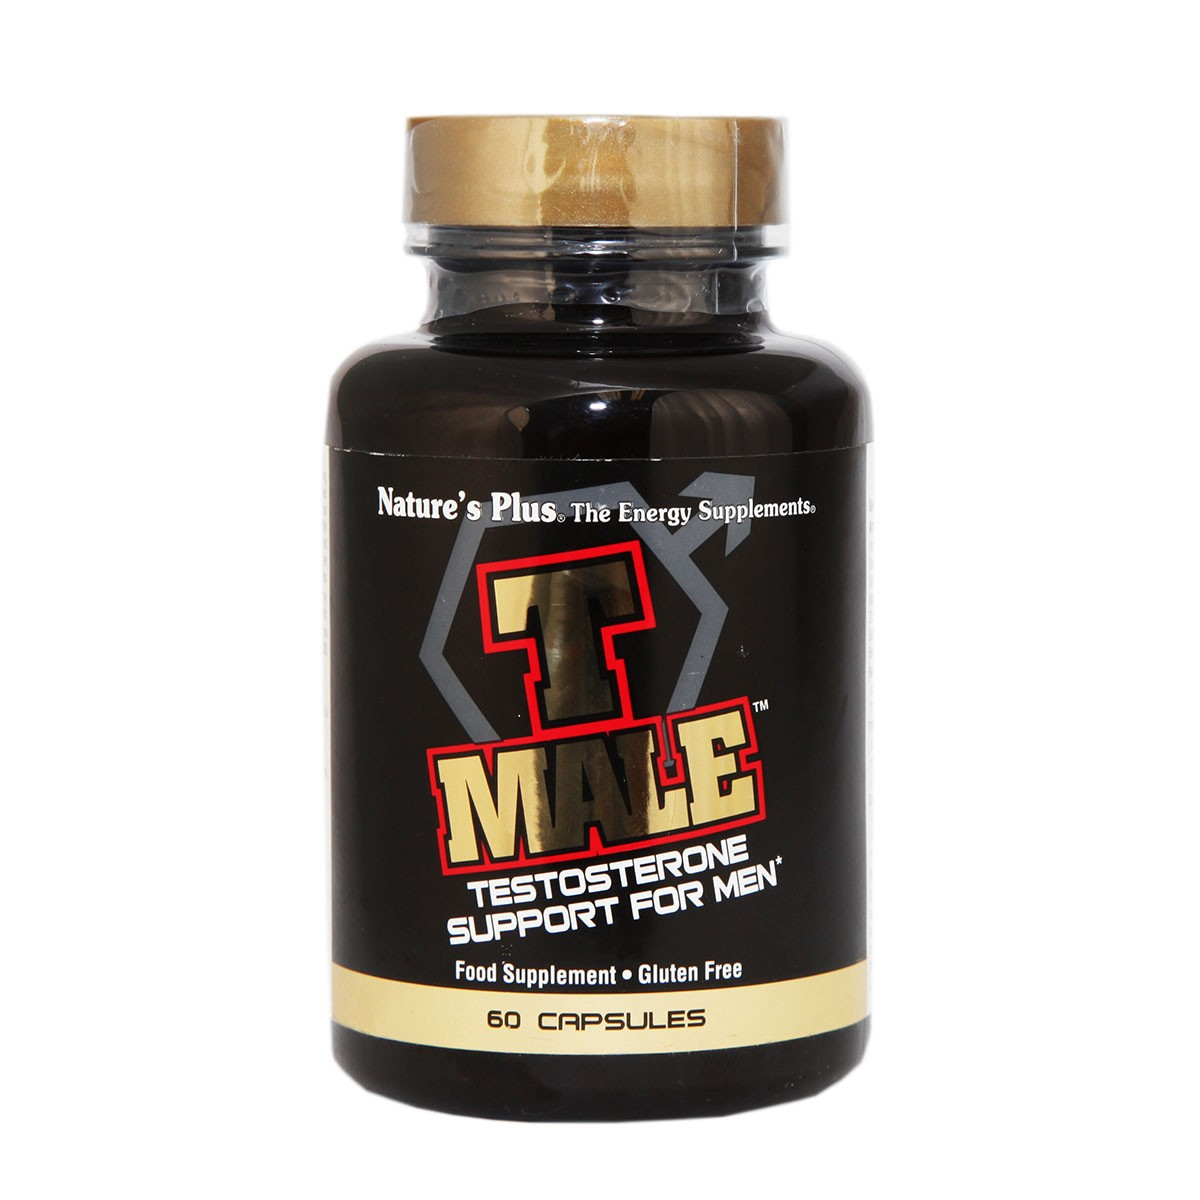 Natures Plus T Male Testosterone Support for Men